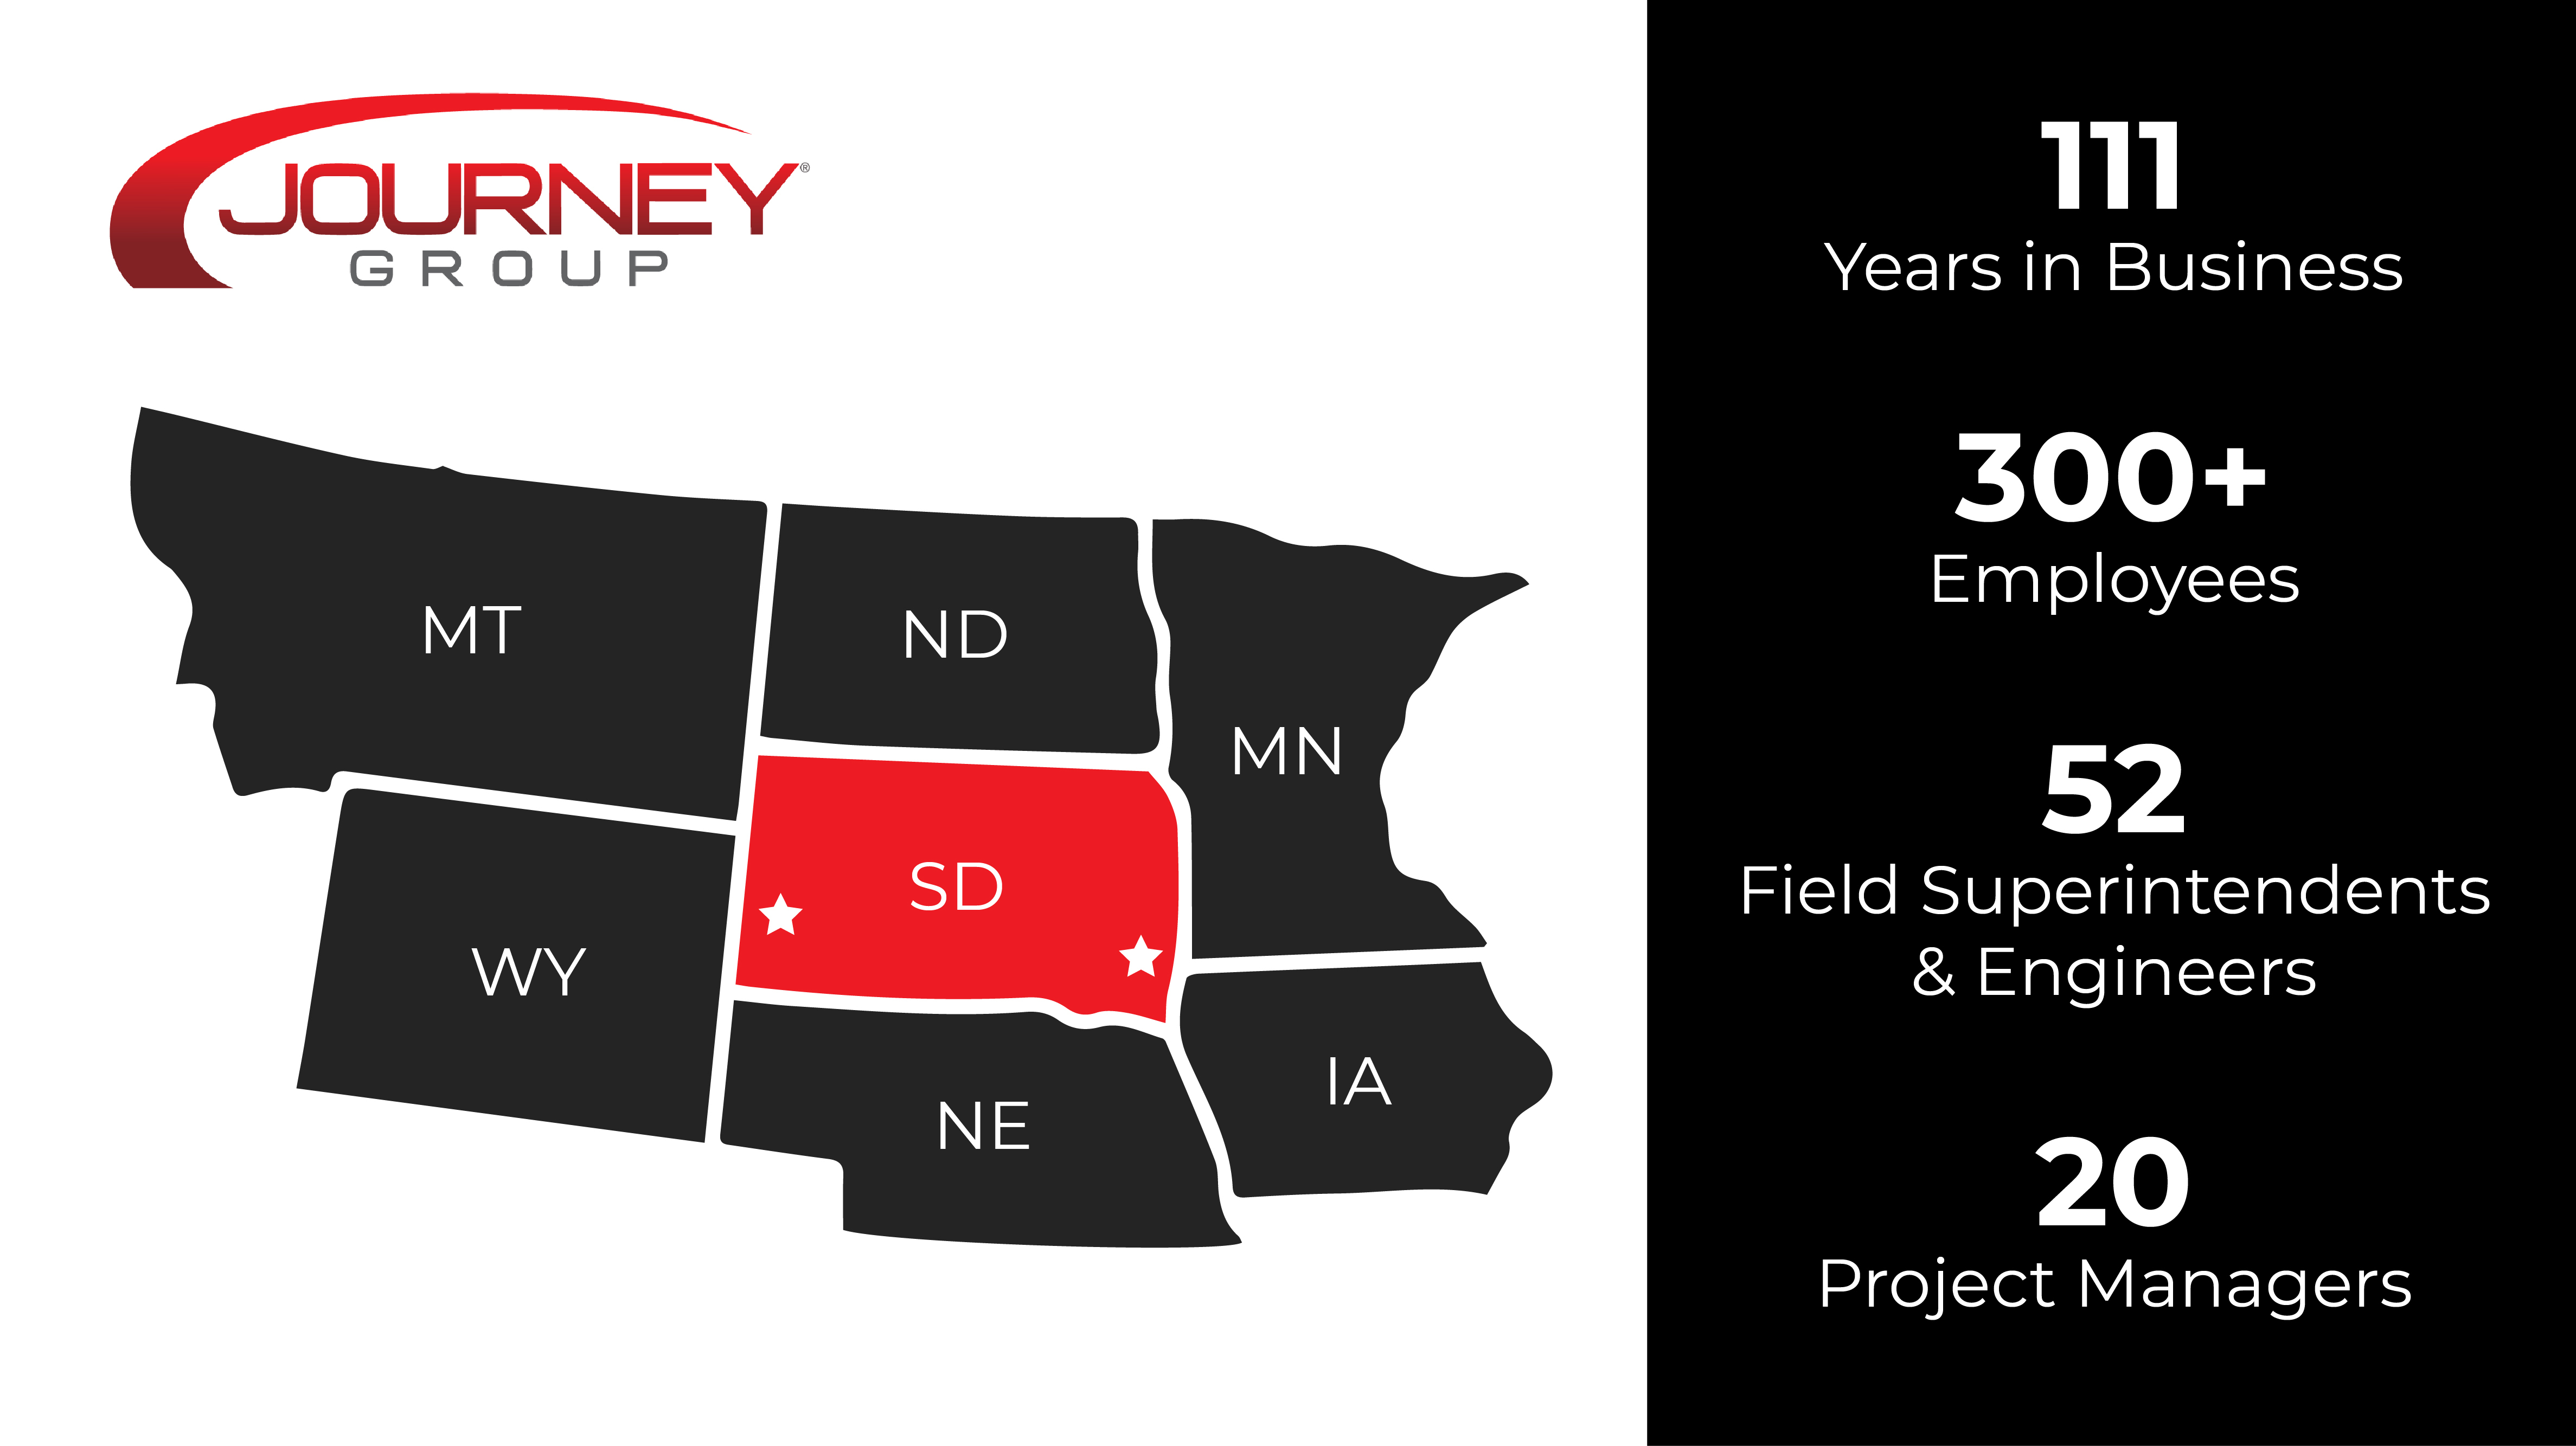 111 Years in Business, 300+ Employees, 52 Field Superintendents & Engineers, 20 Project Managers